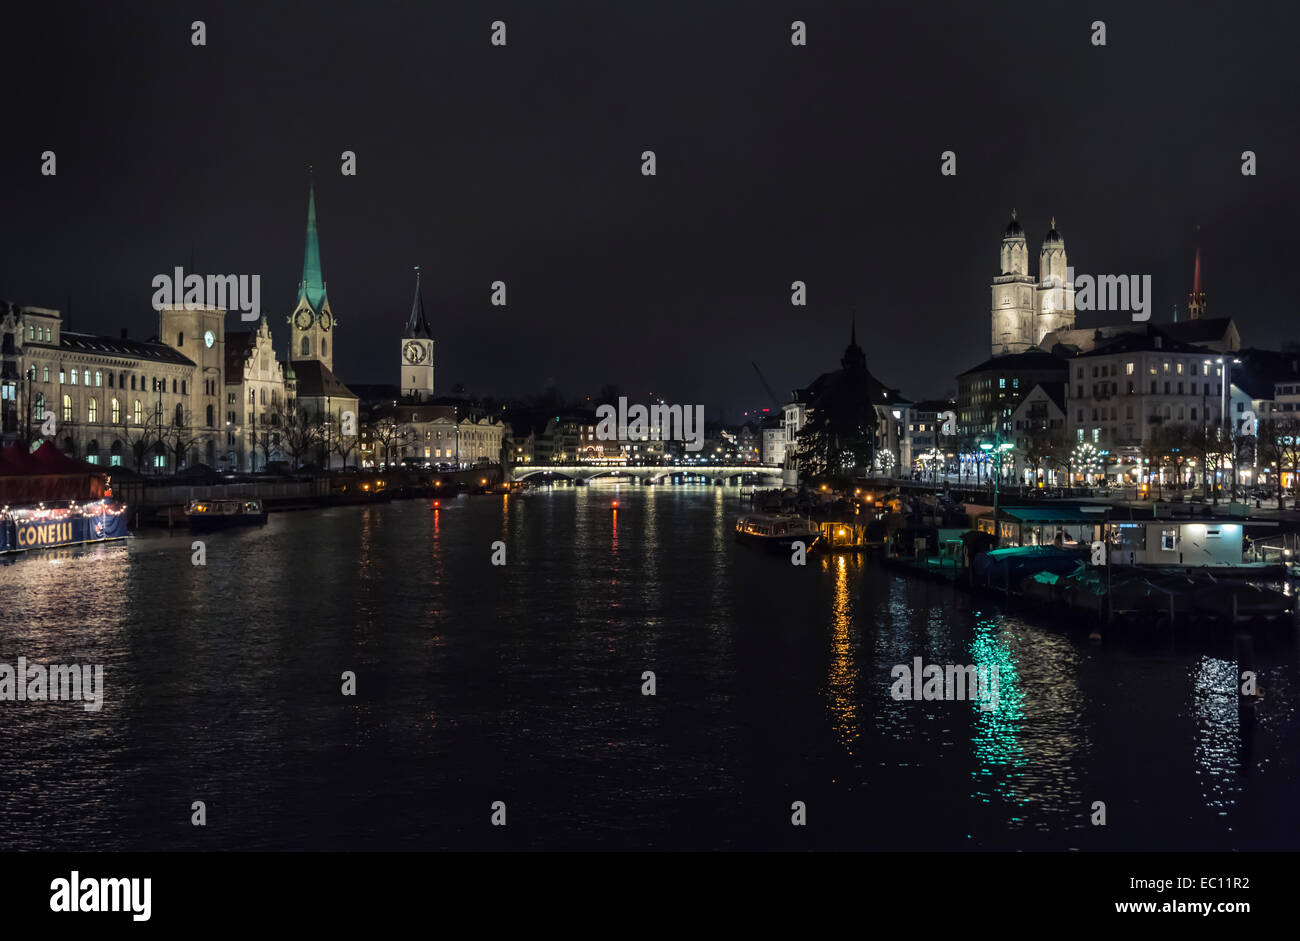 Night view of Zurich's old city, looking down the Limmat river with Grossmunster cathedral (right). - Stock Image